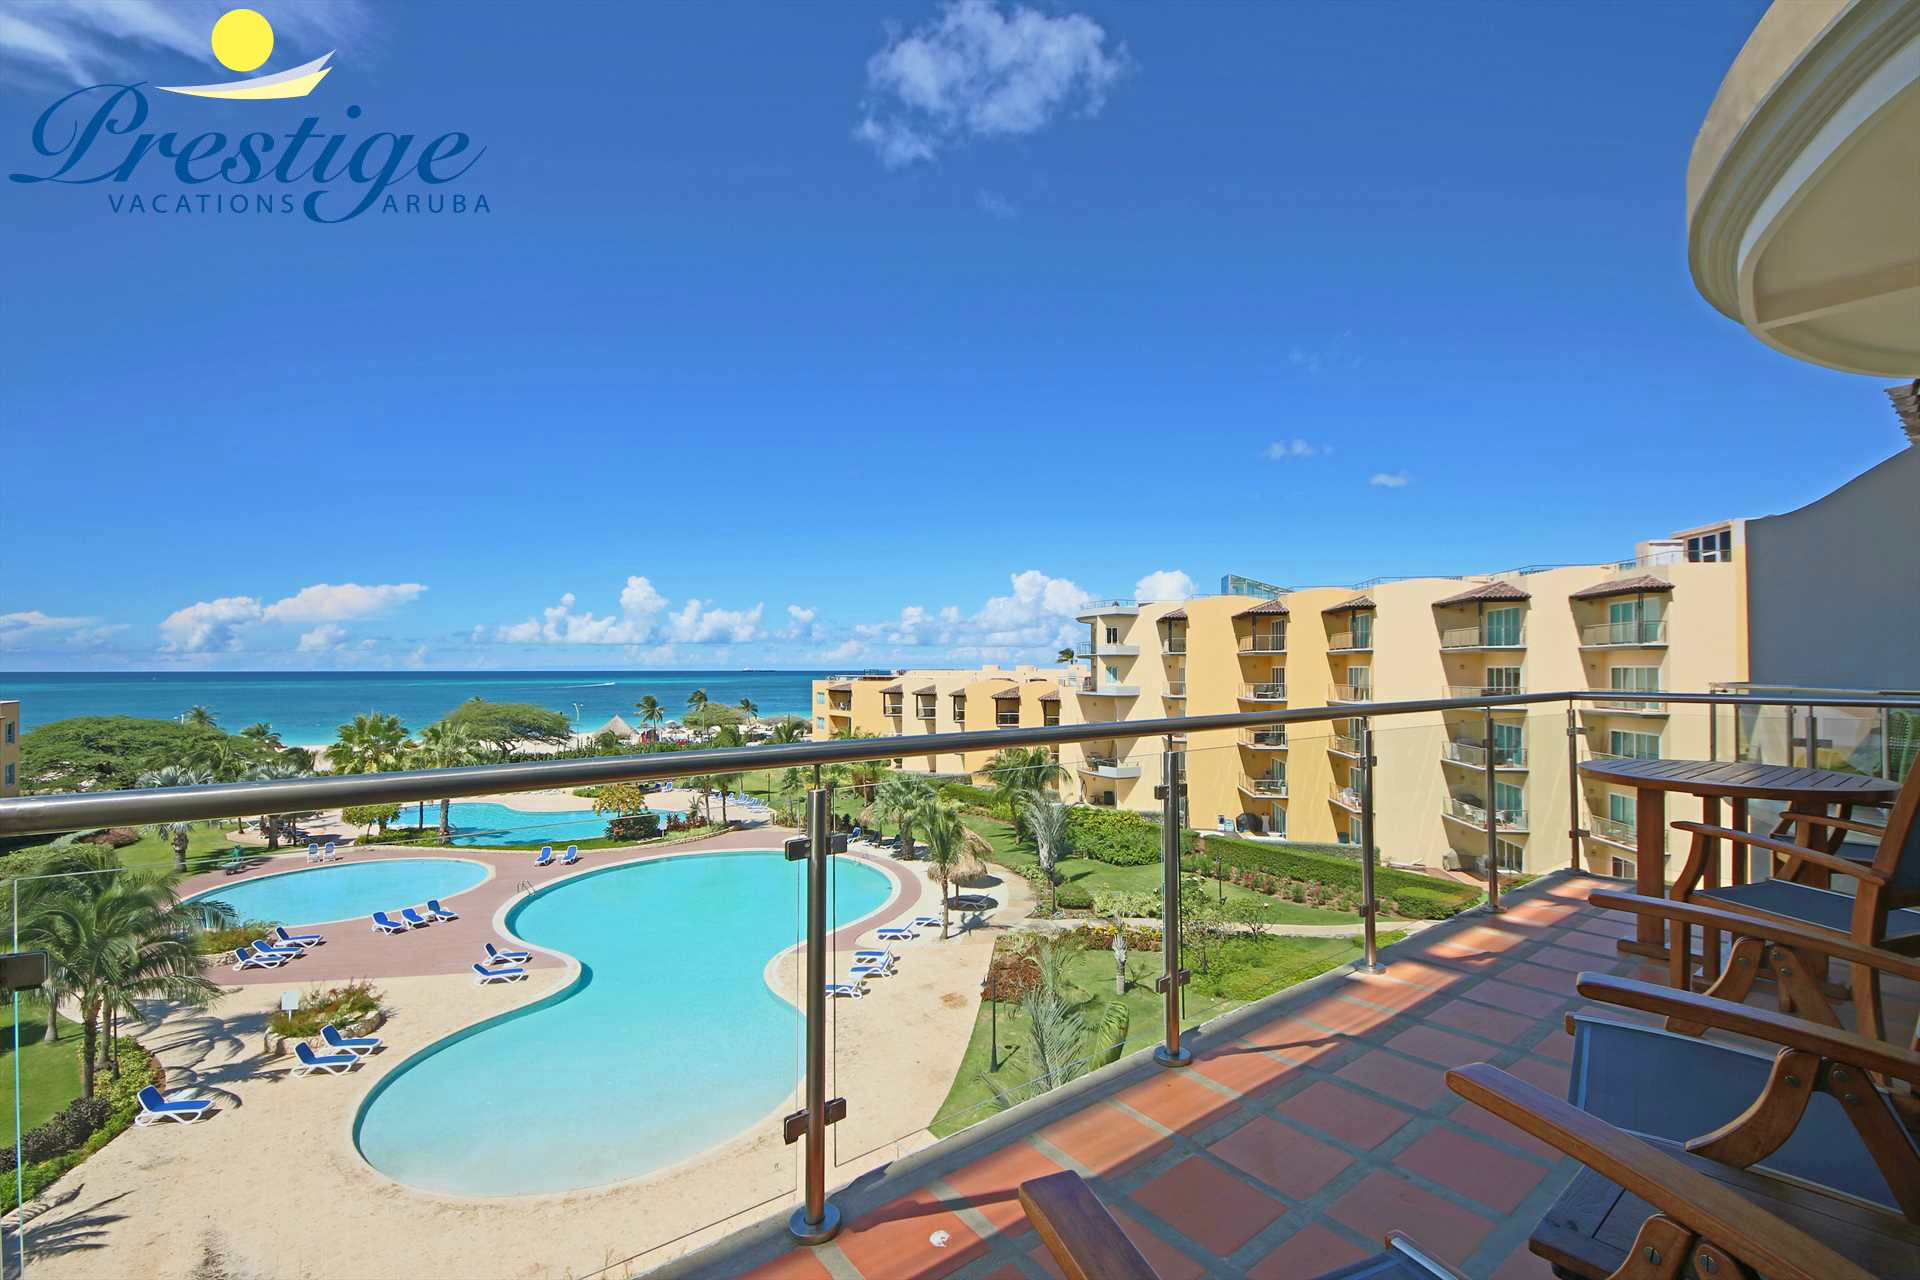 Sit, relax and enjoy the stunning ocean and resort pool views